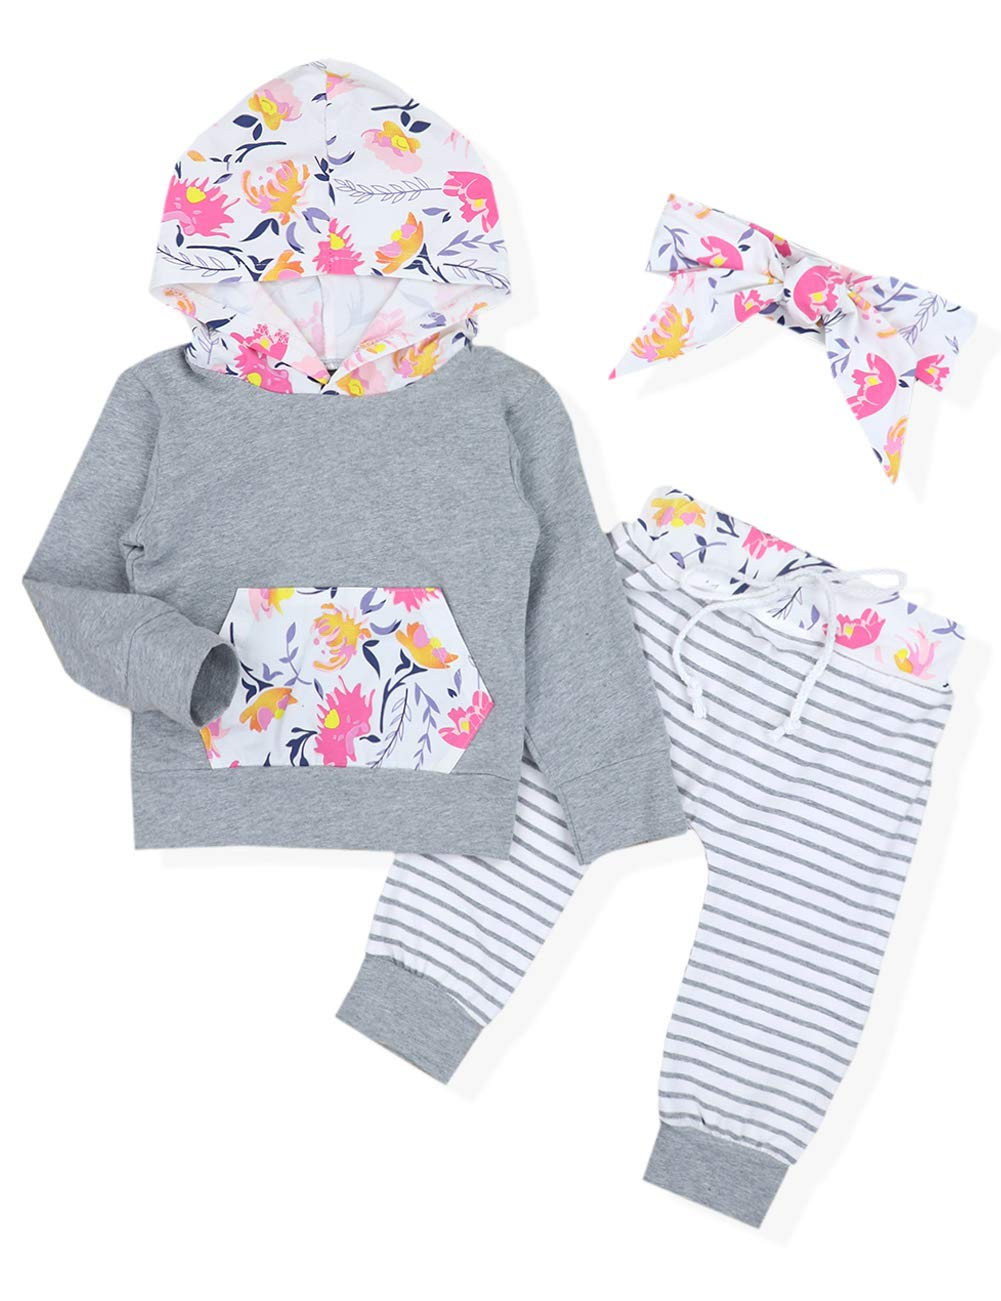 Baby Girl Outfits Florals Hoodie Top with Pocket Striped Long Pants and Headband Clothes Set(0-6 Months)